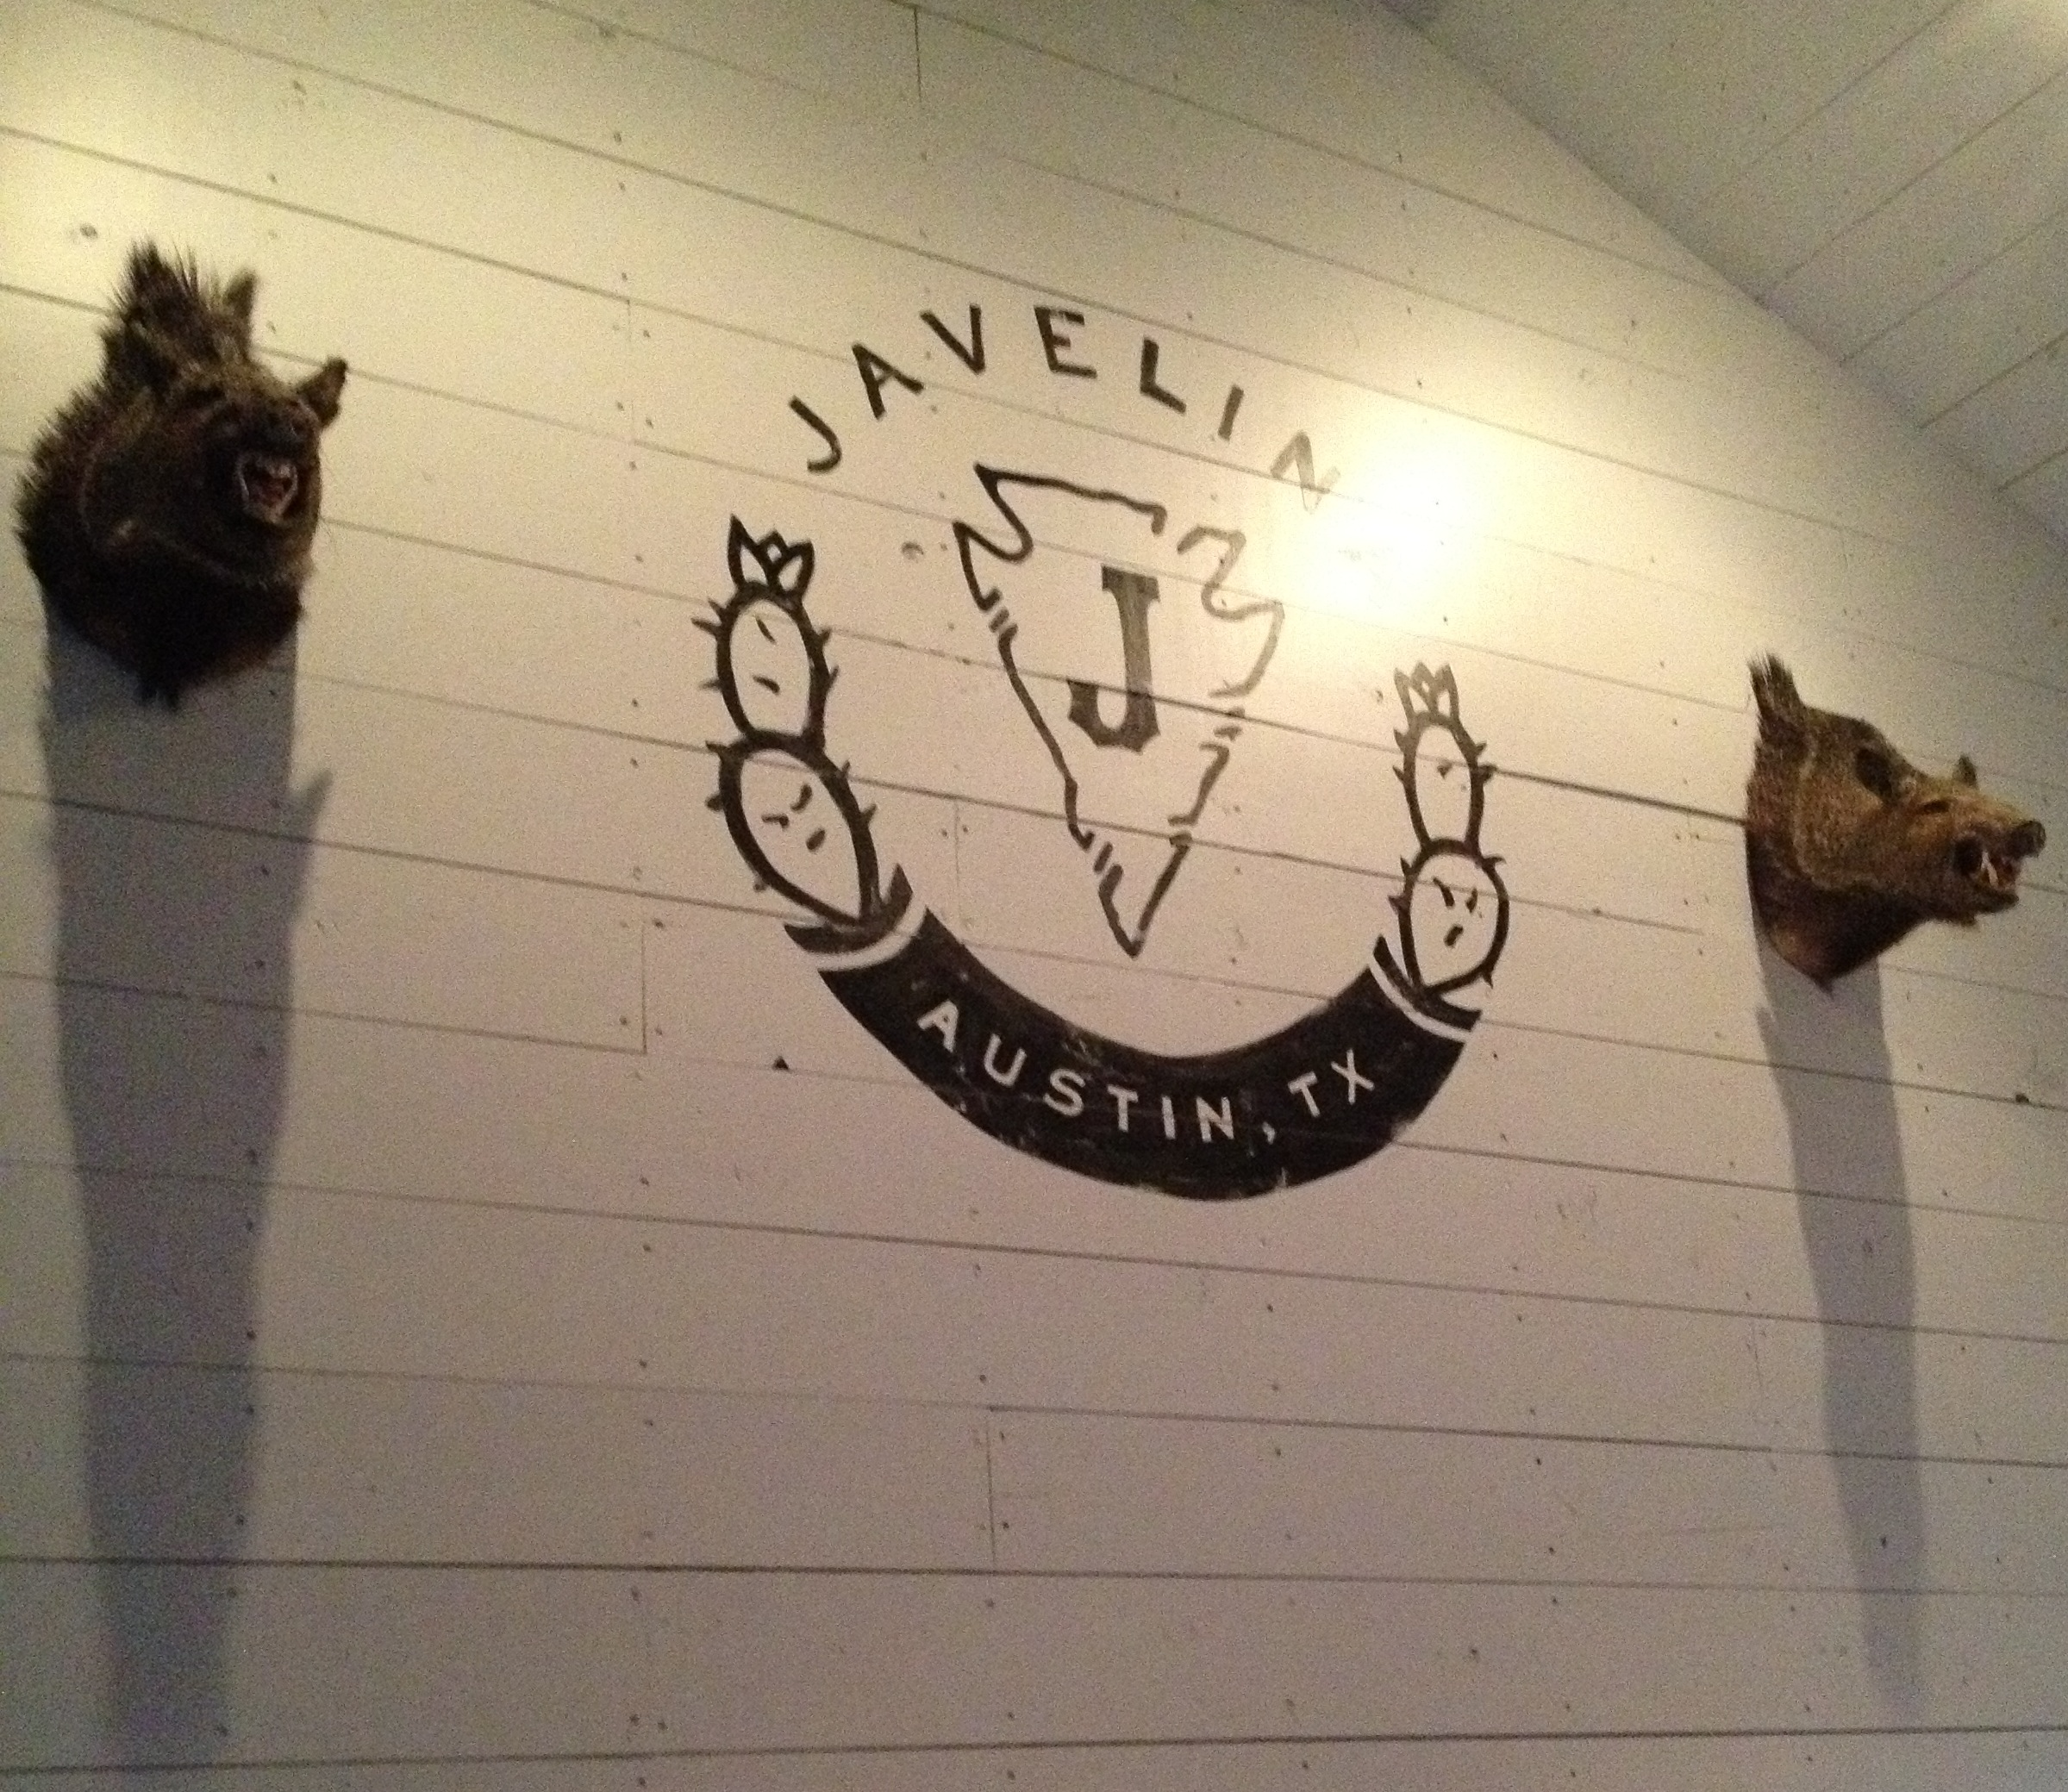 Javelina Bar: MENU, Pictures, Short Review, and a Call for Action